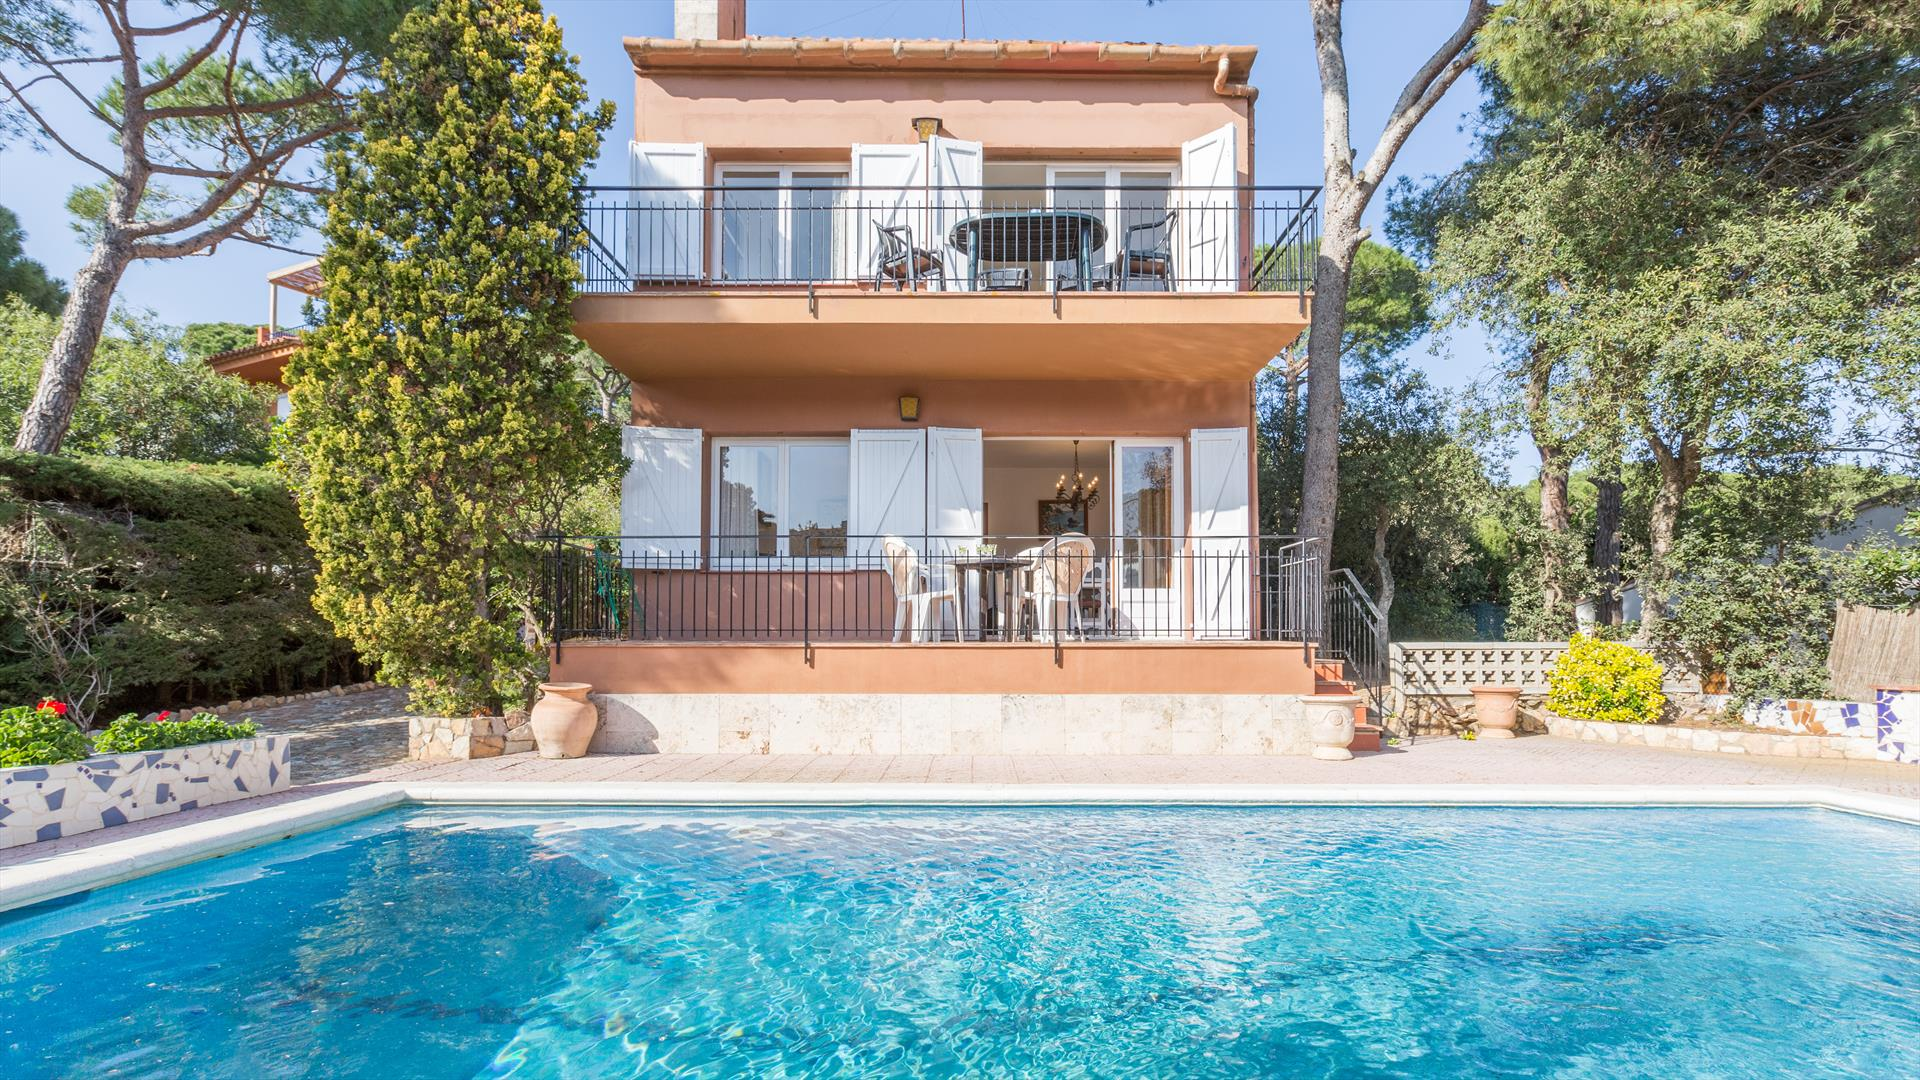 Bene 1, Apartment in Llafranc, on the Costa Brava, Spain for 6 persons...